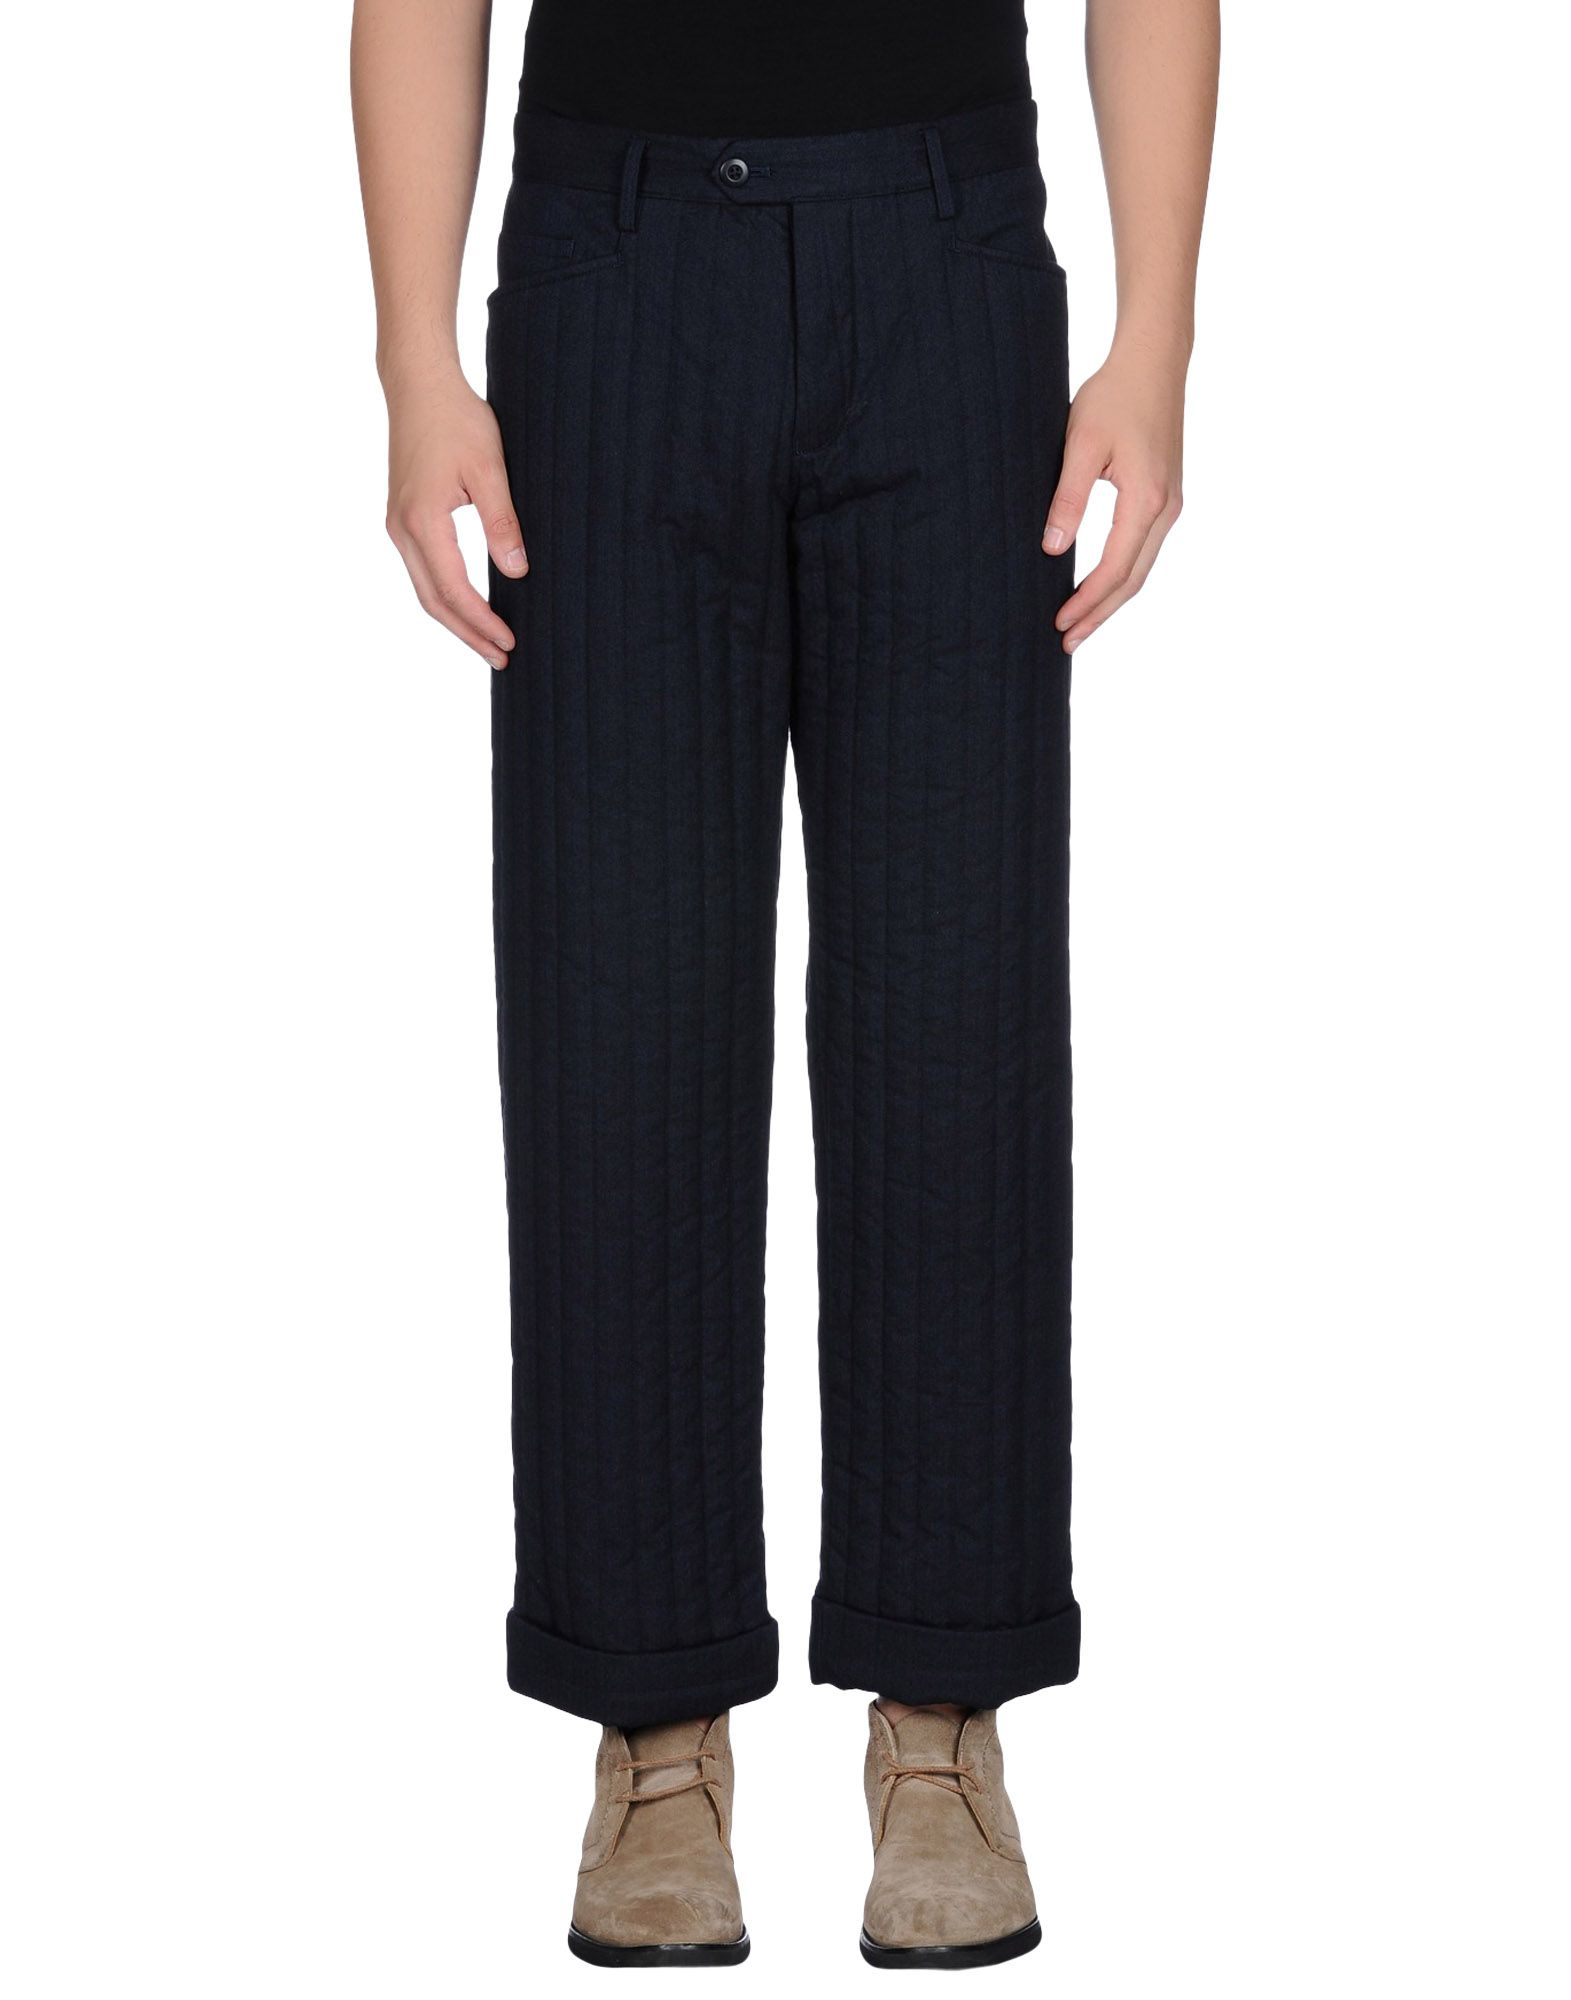 TROUSERS - Casual trousers TS(S) VYwVUL2